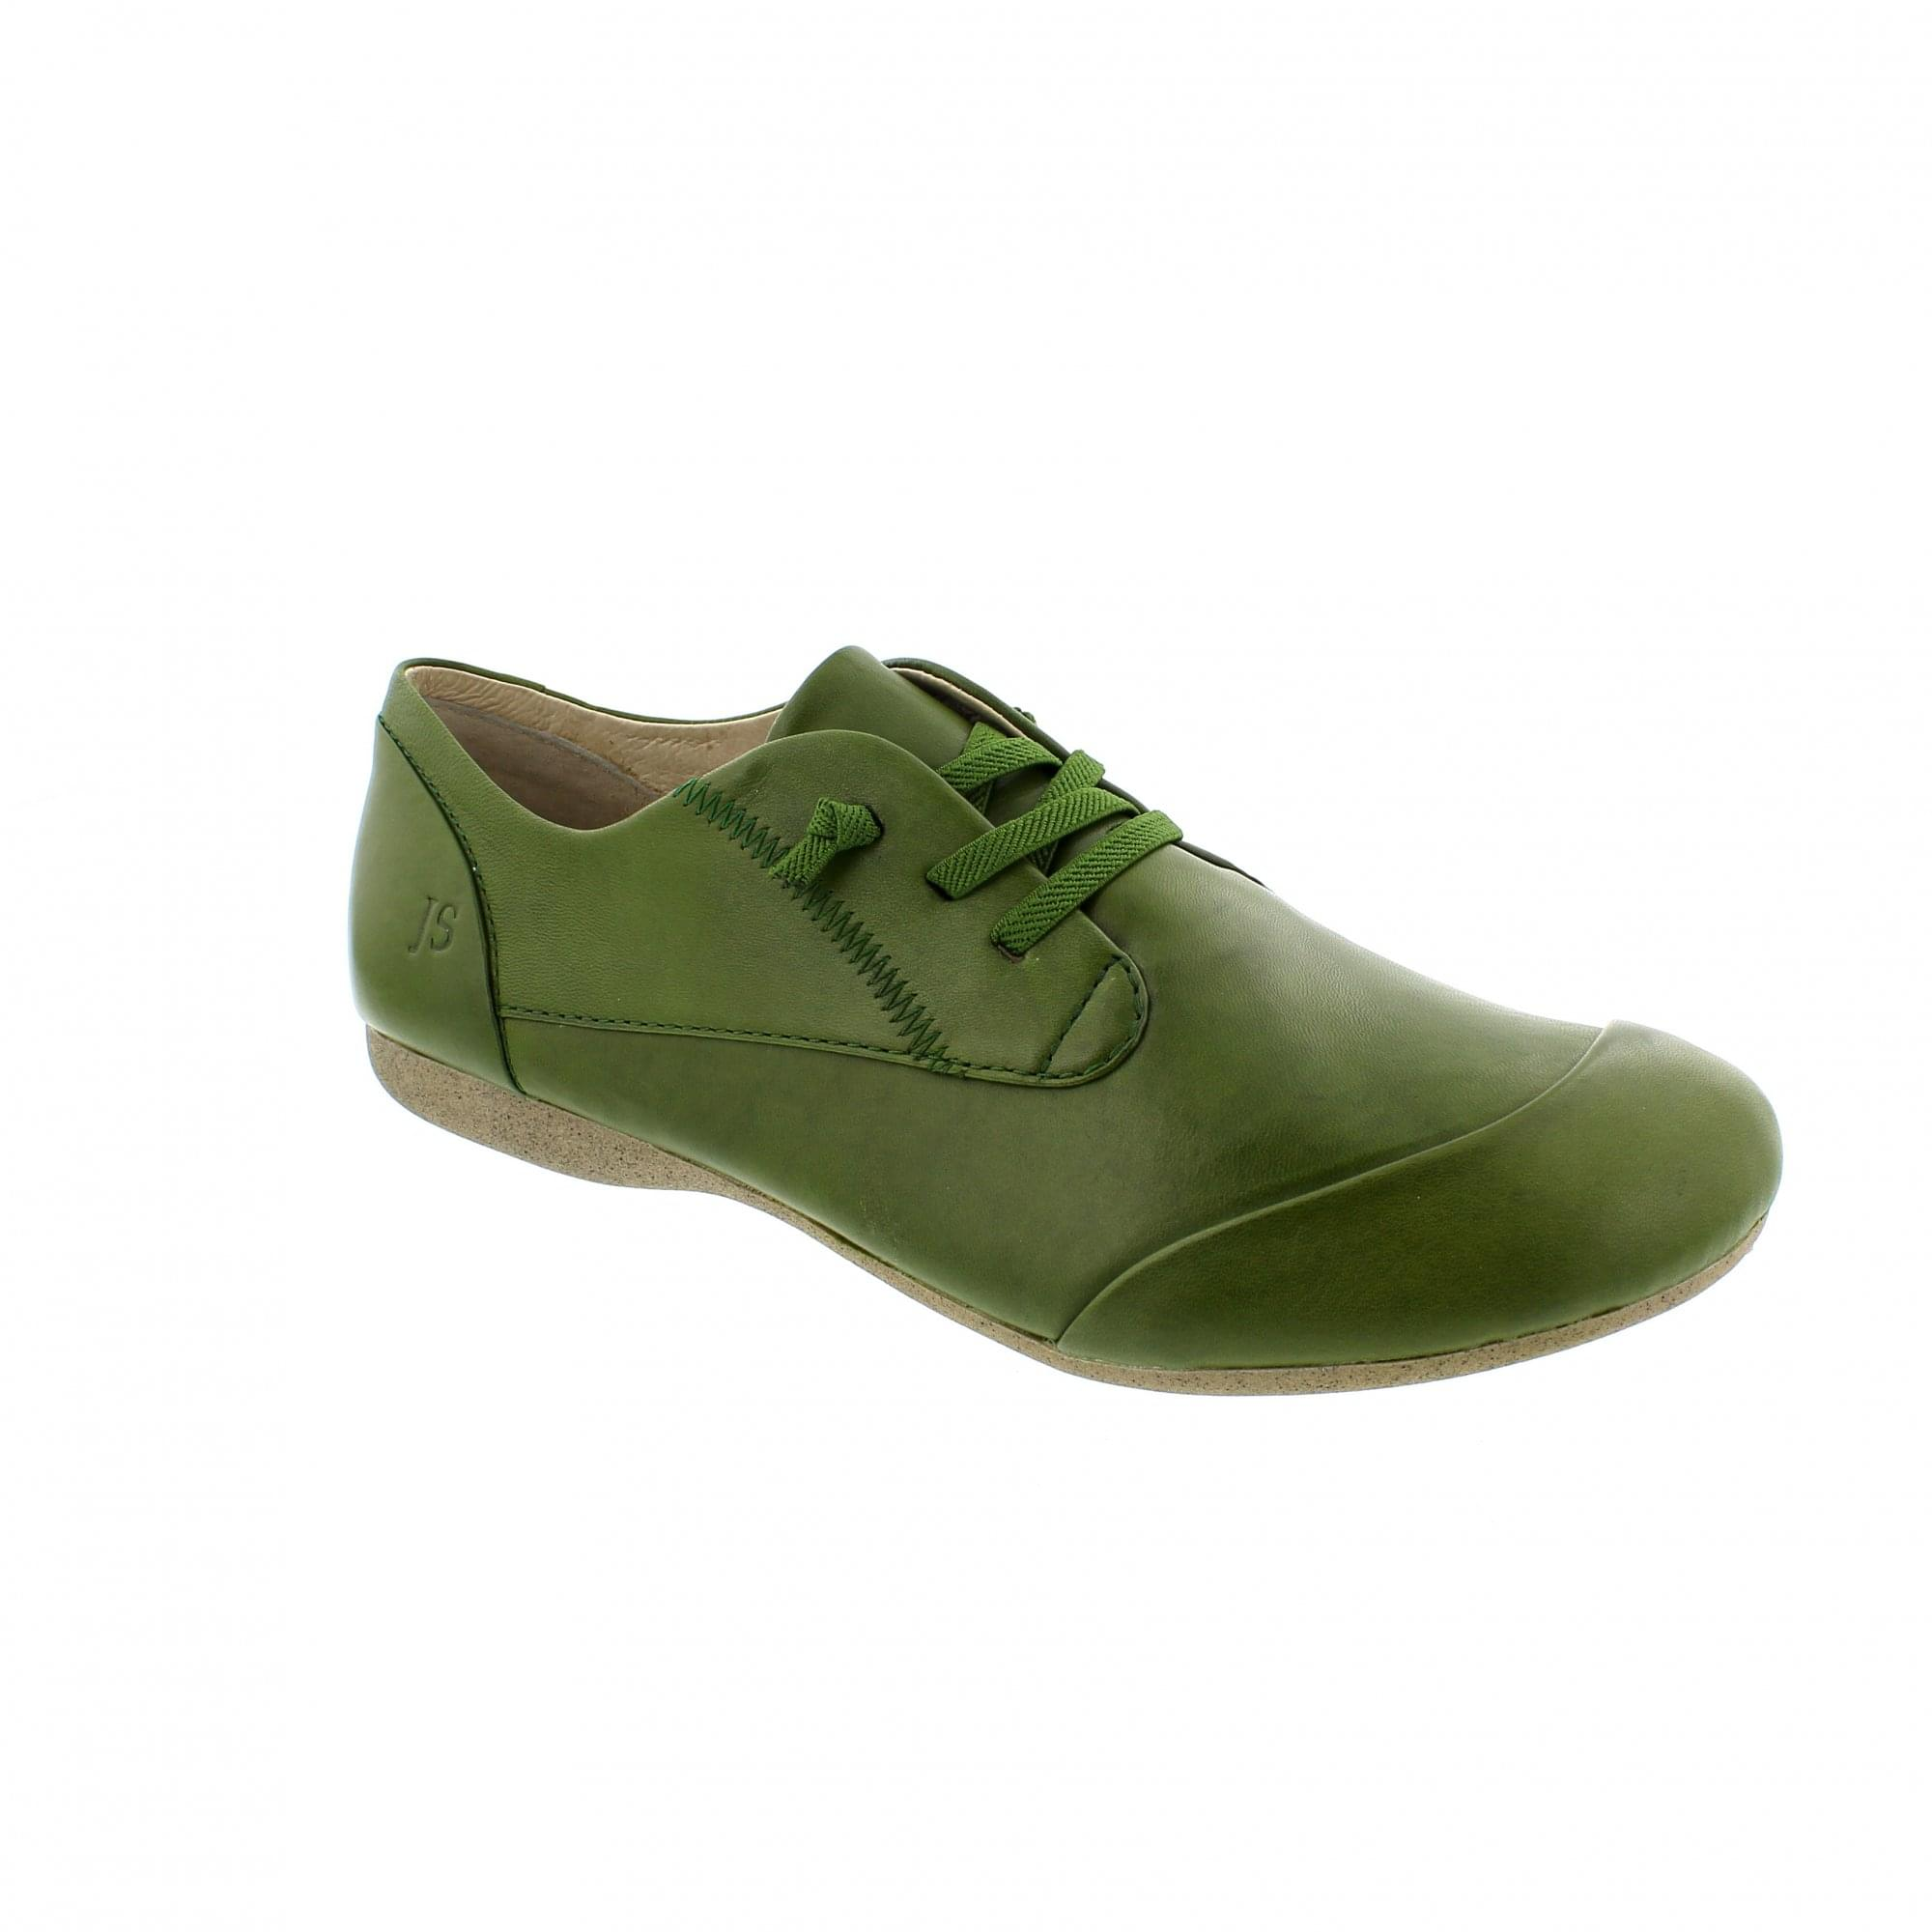 50% off genuine shoes discount sale Fiona 01 | 87201-971244